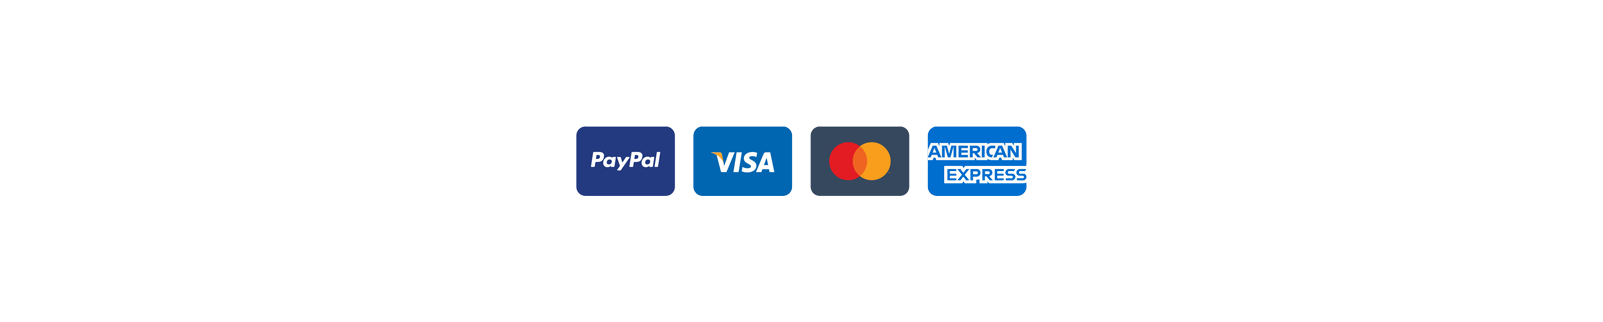 Minimal-Credit-Card-Icons copia2.png